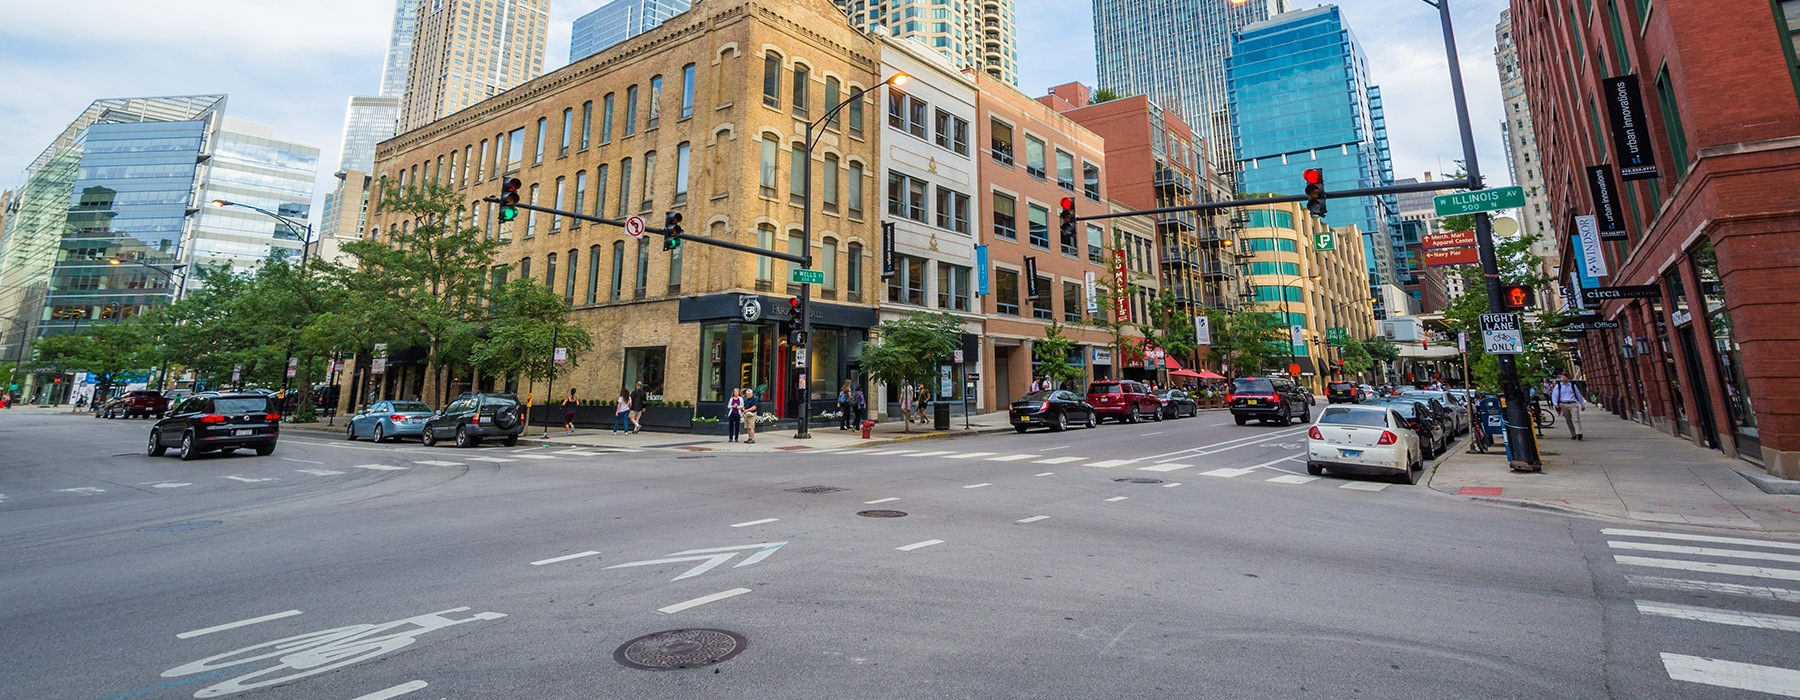 Street view of downtown Chicago